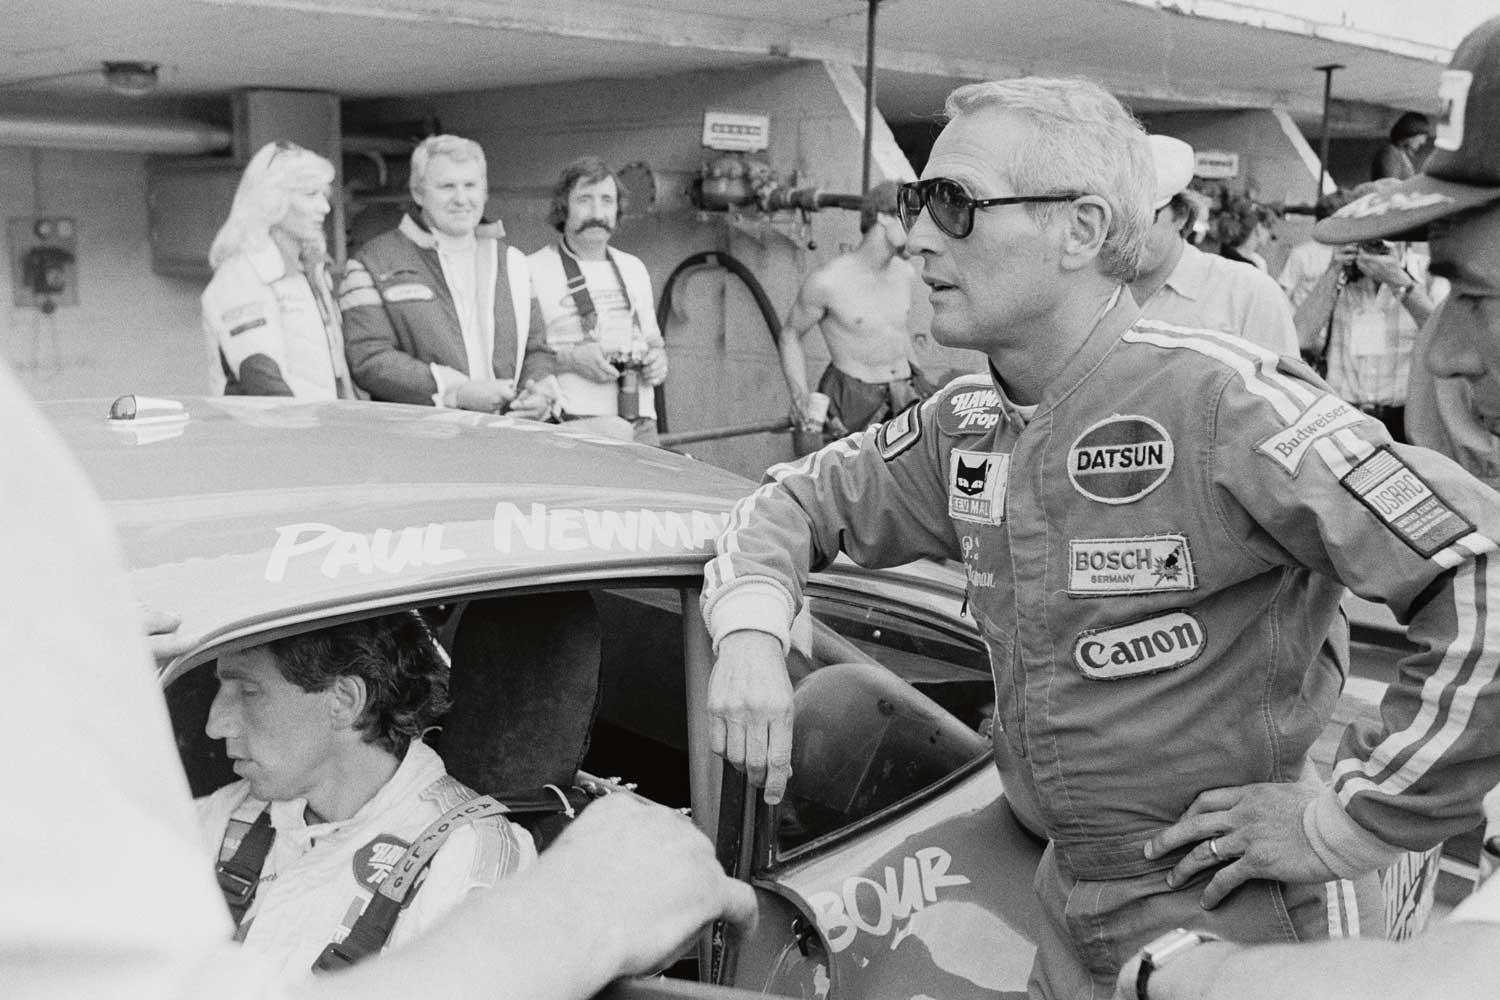 Paul Newman at the 1979 Le Mans race, where his team came in second